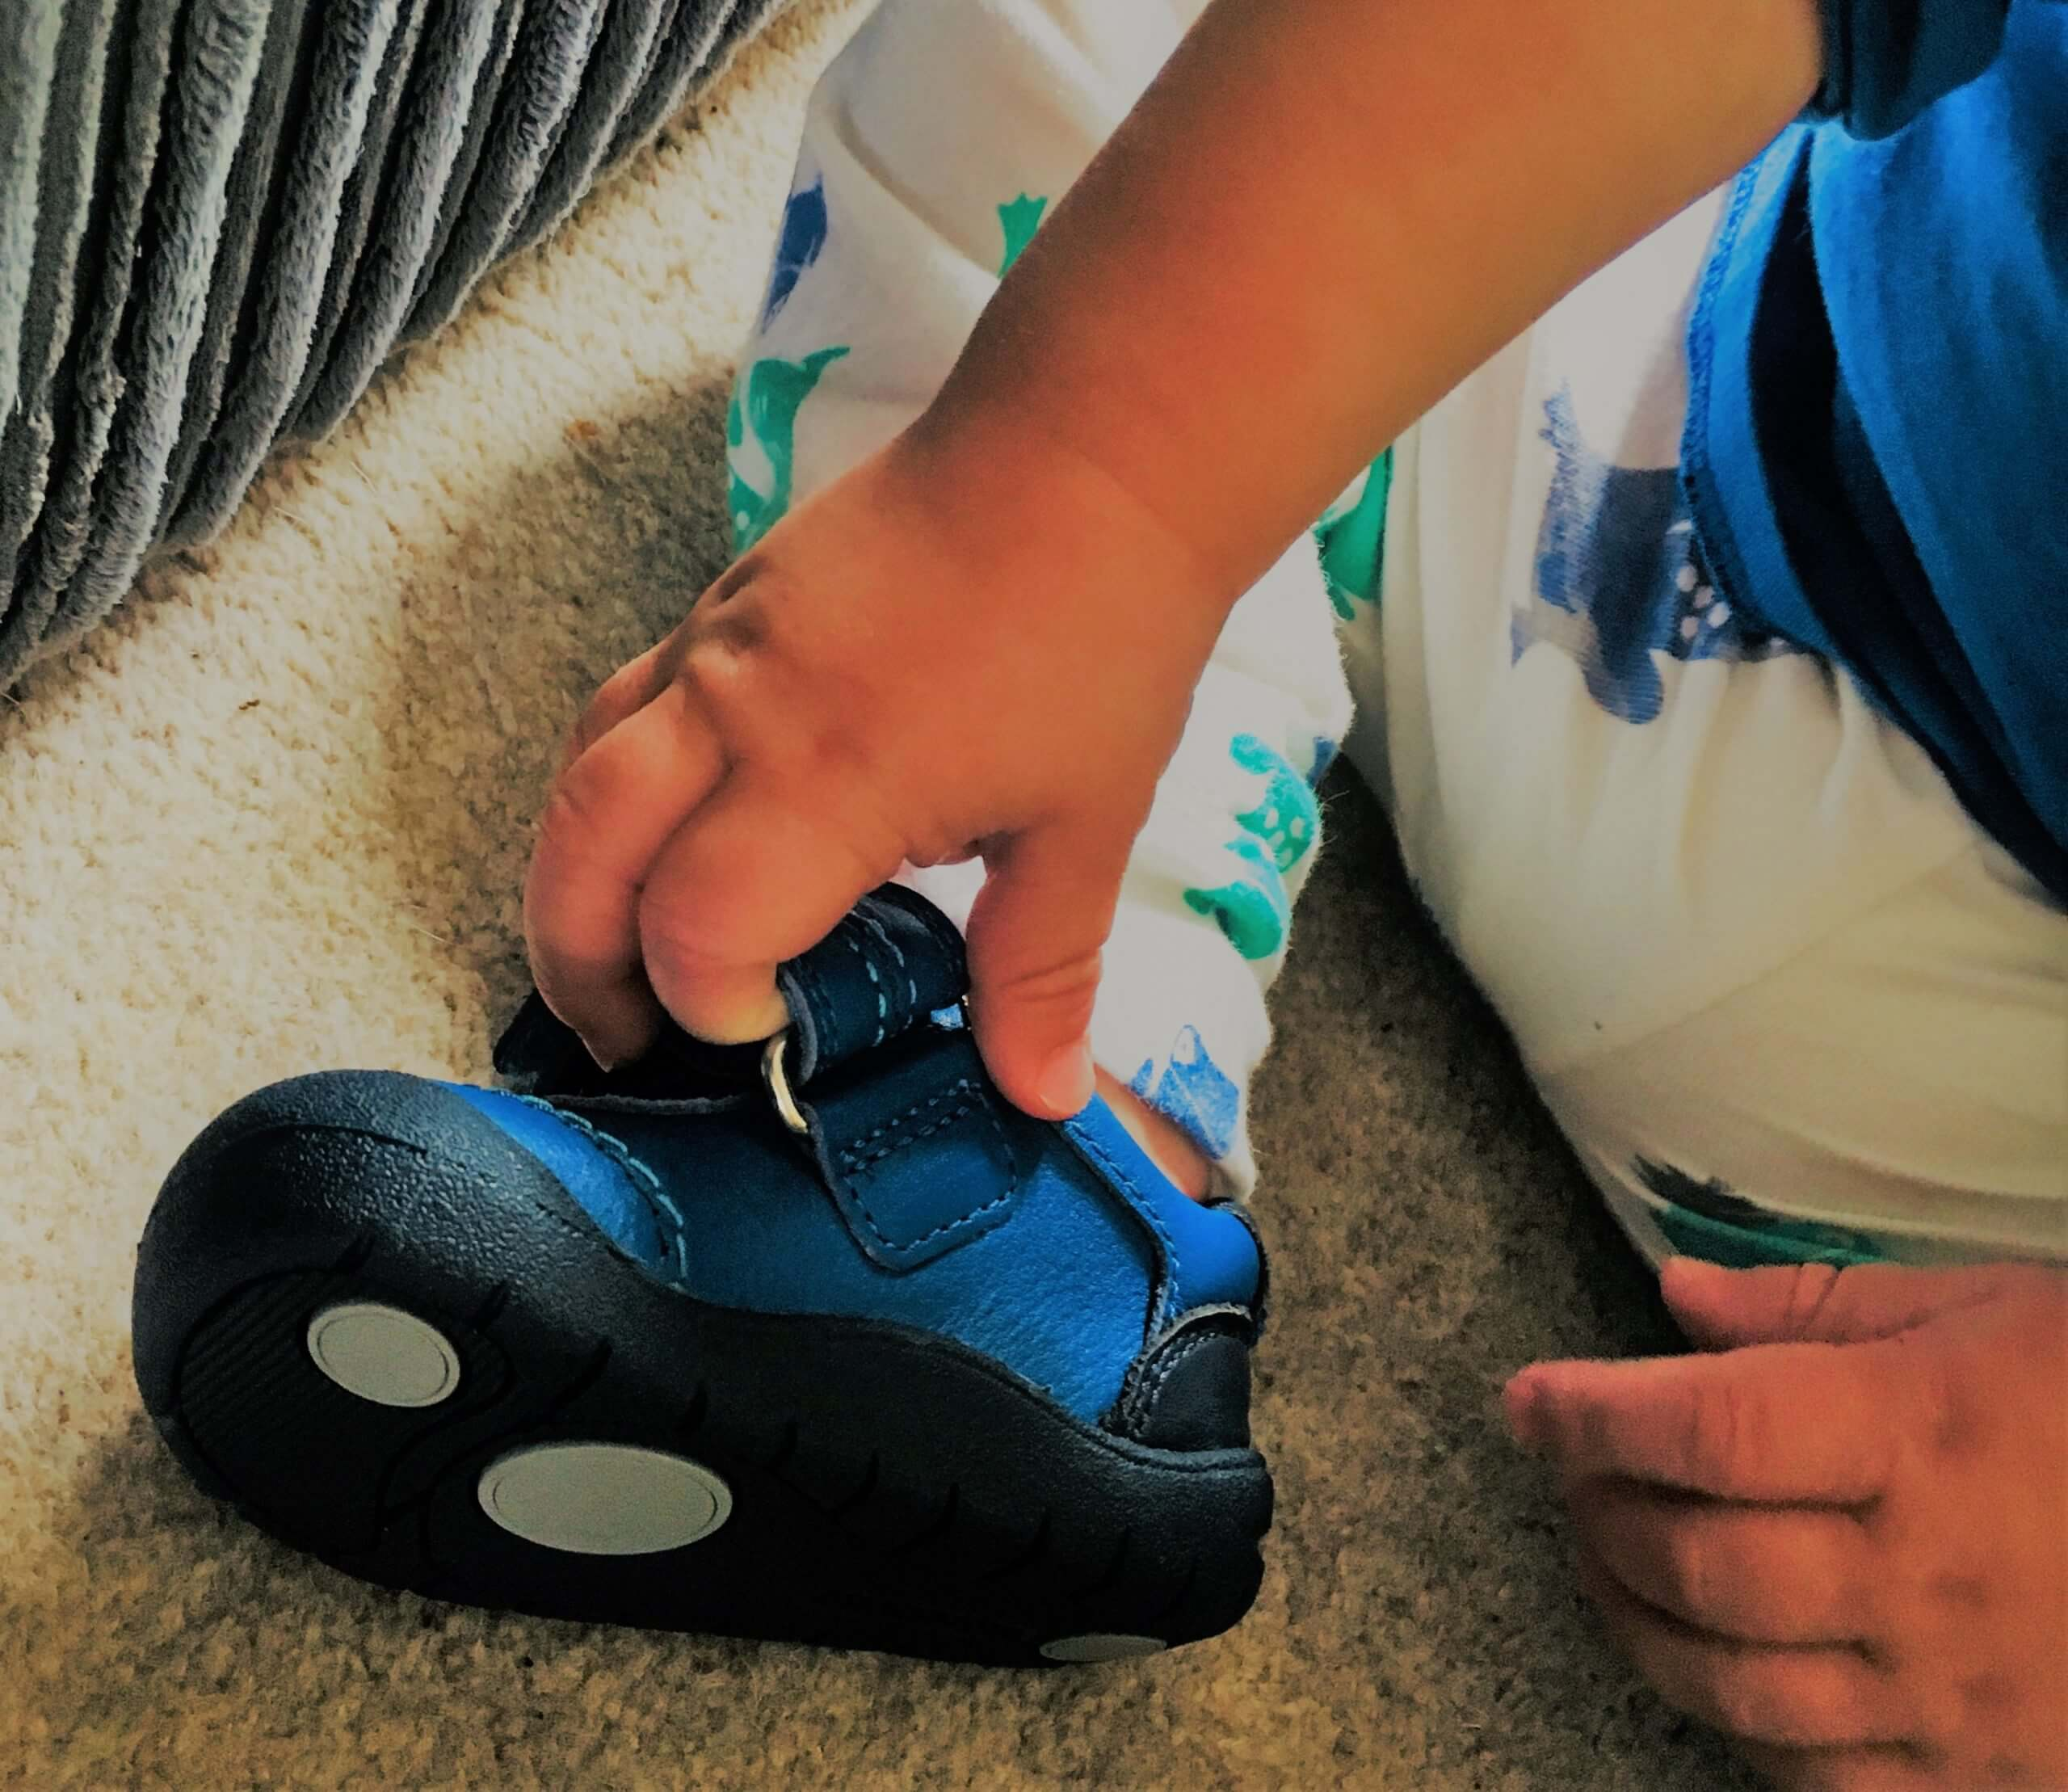 Start-Rite Shoes for Kids | Babies First Shoes, startrite%, product-review%